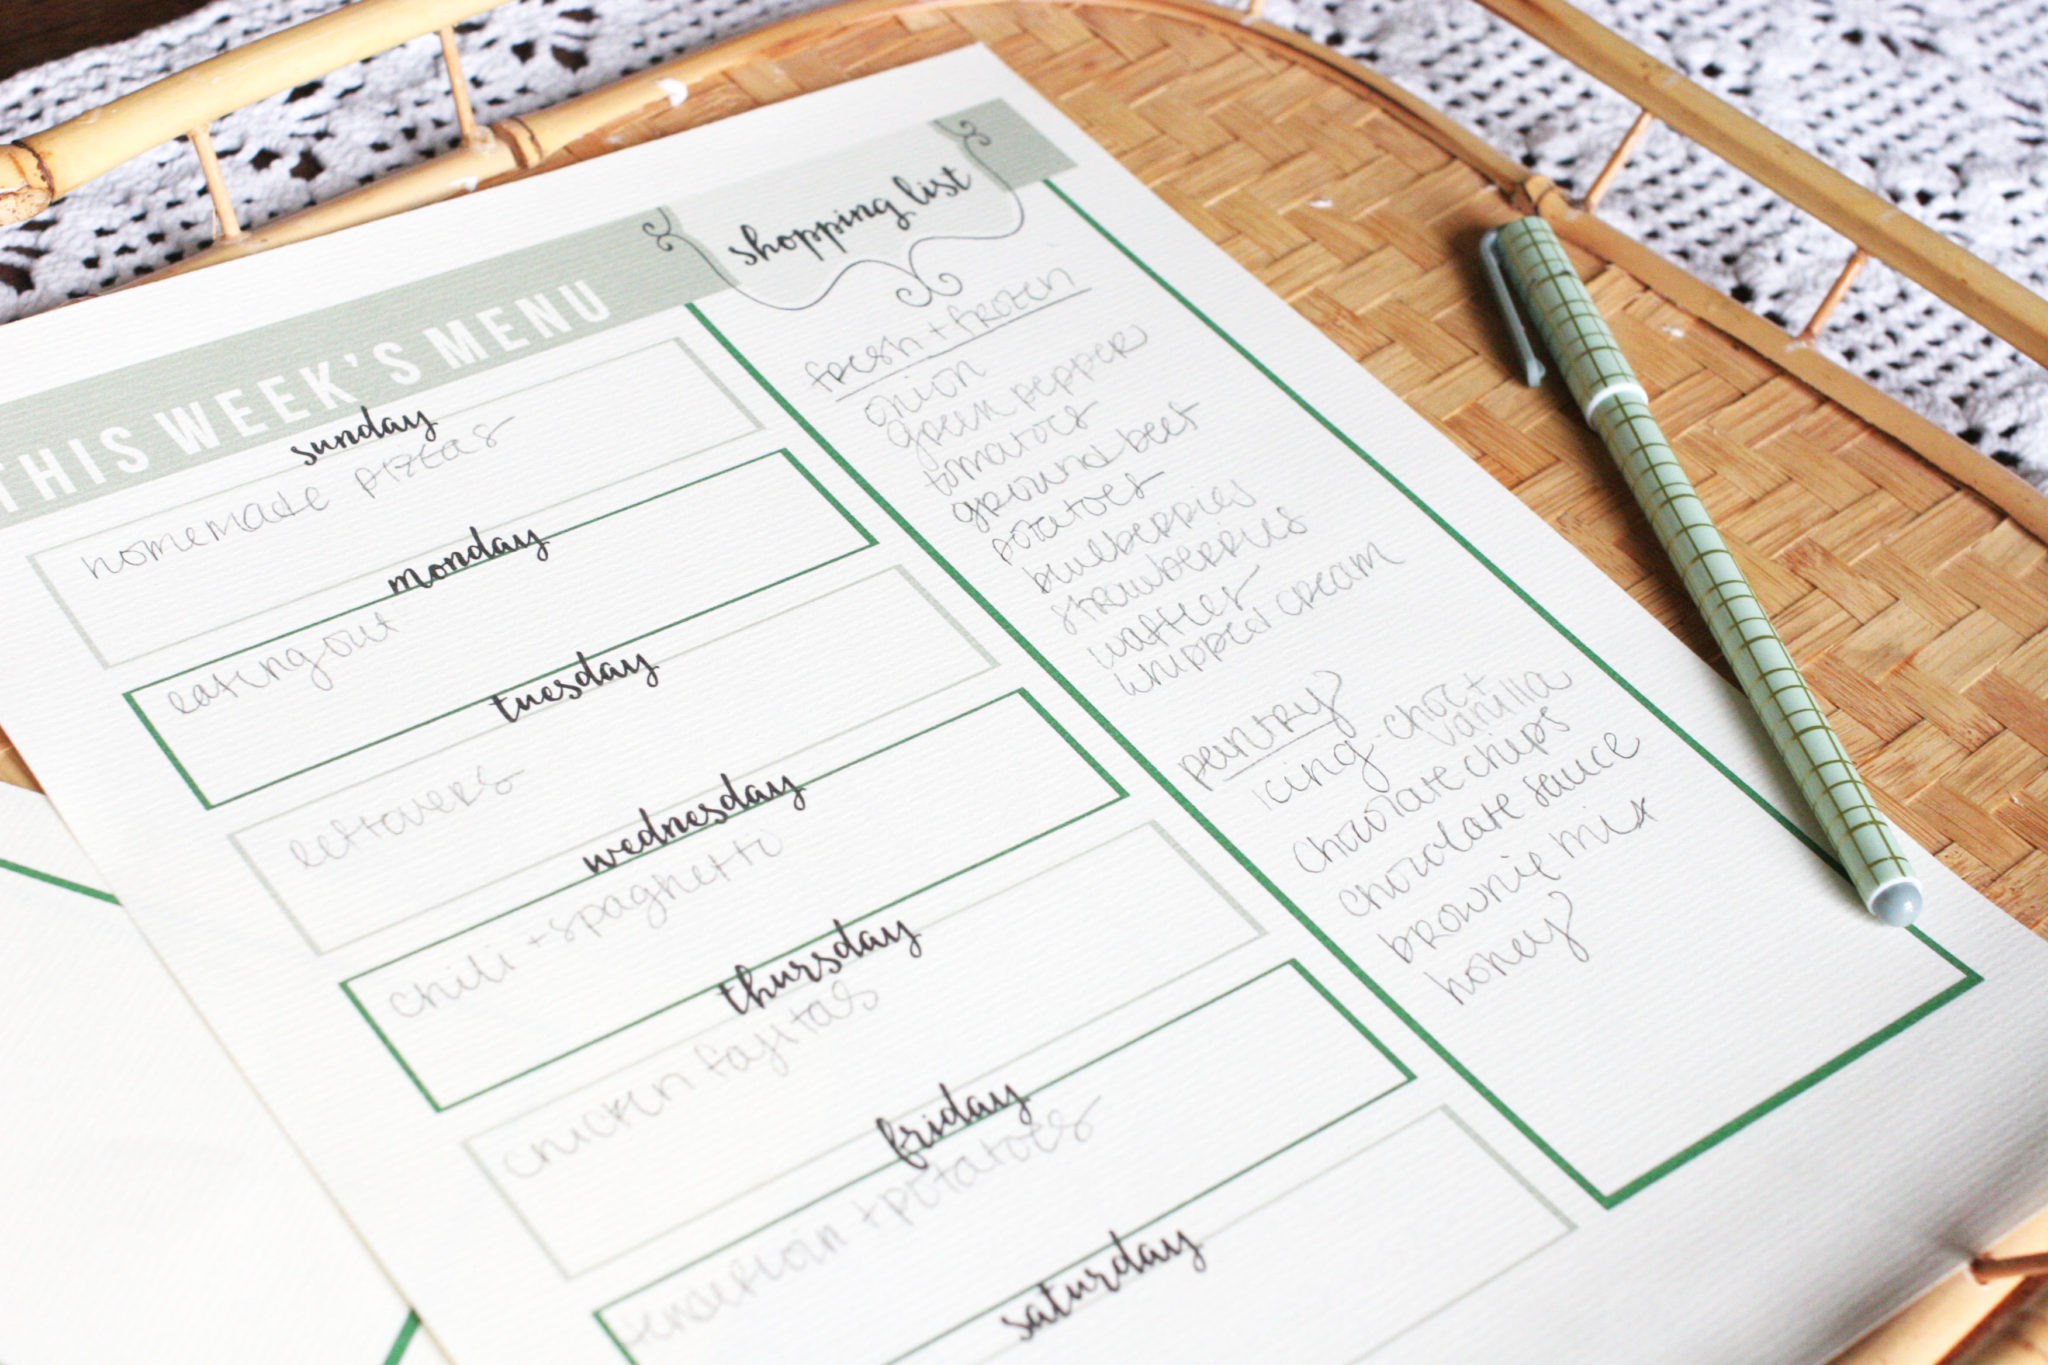 Download A Free Menu Planning Printable That Includes A Shopping List.  Grocery List And Meal